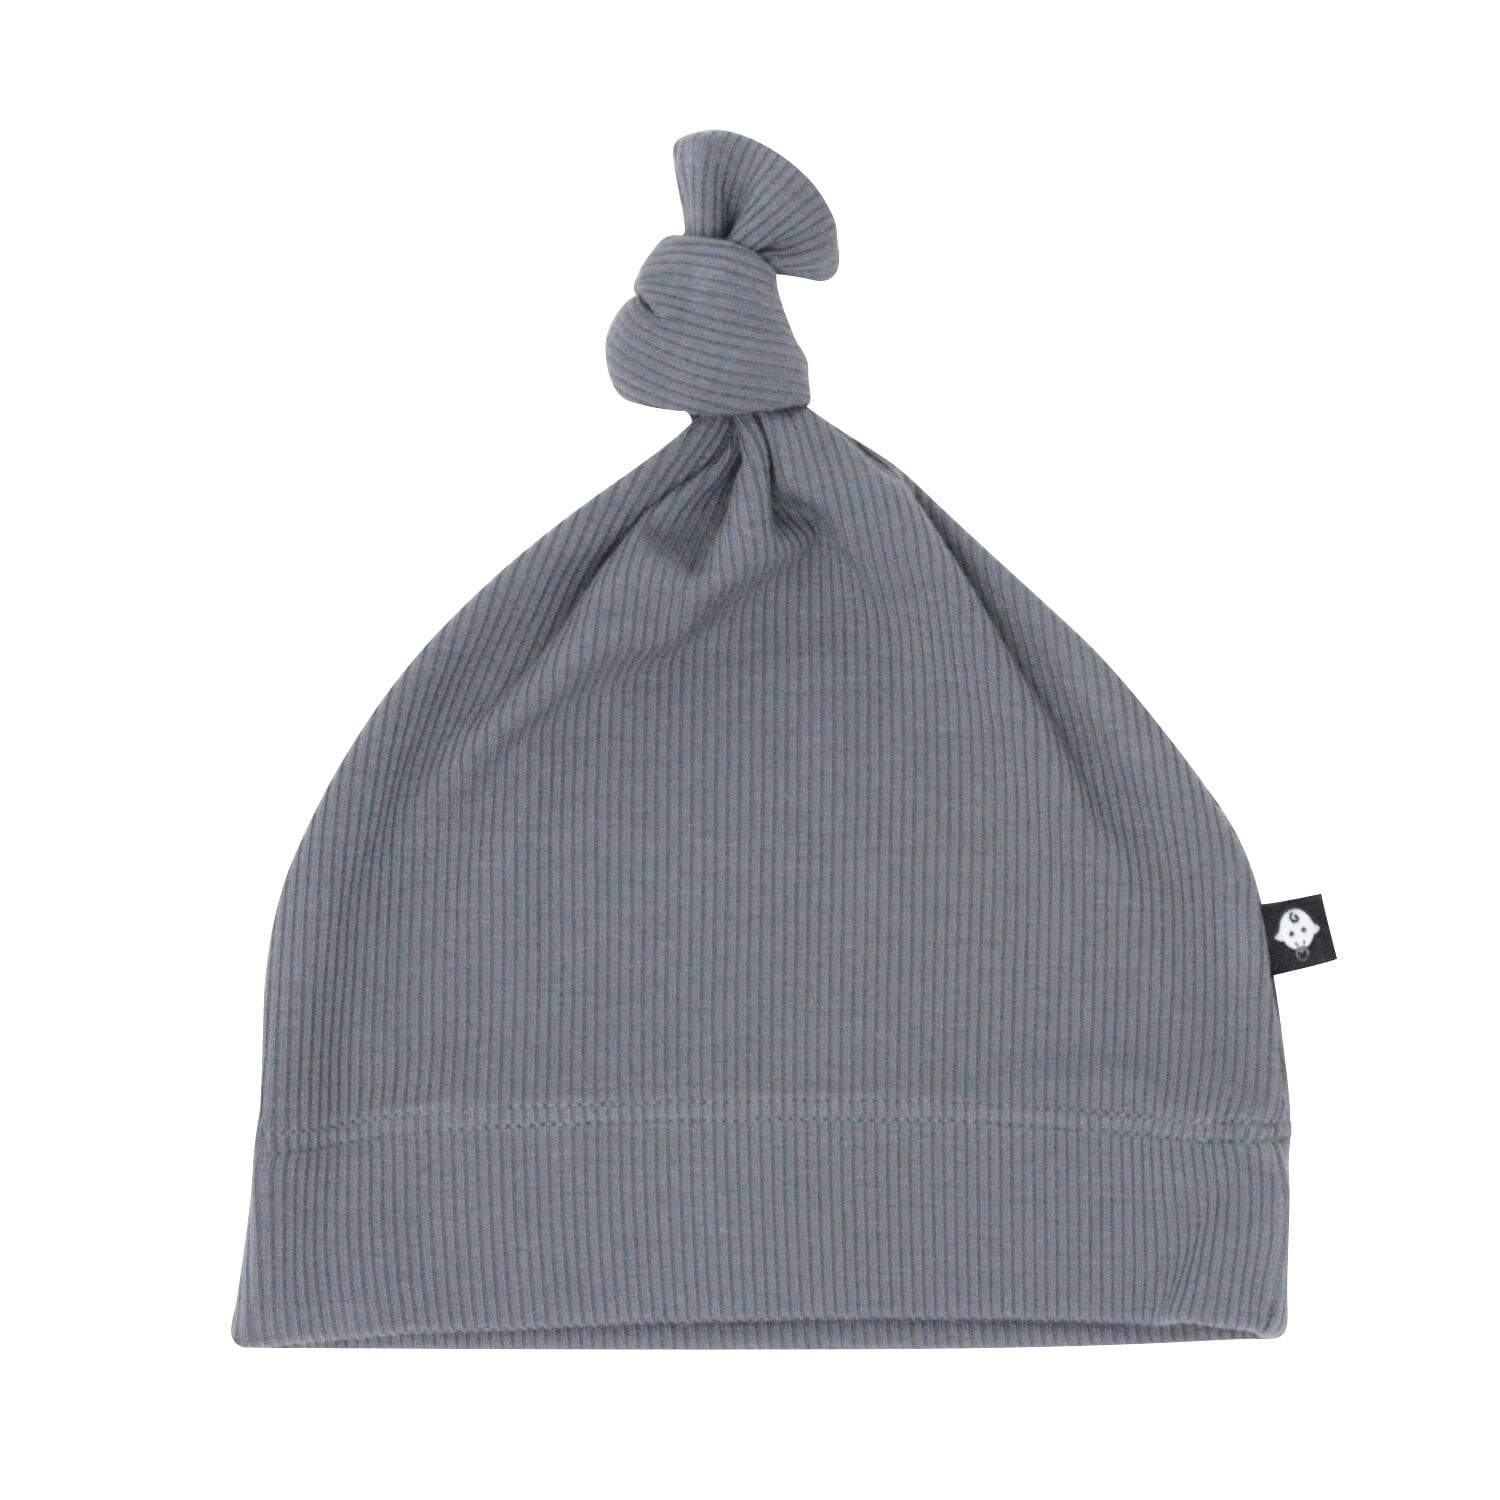 Knot Hat - Charcoal Ribbed - Sweet Bamboo